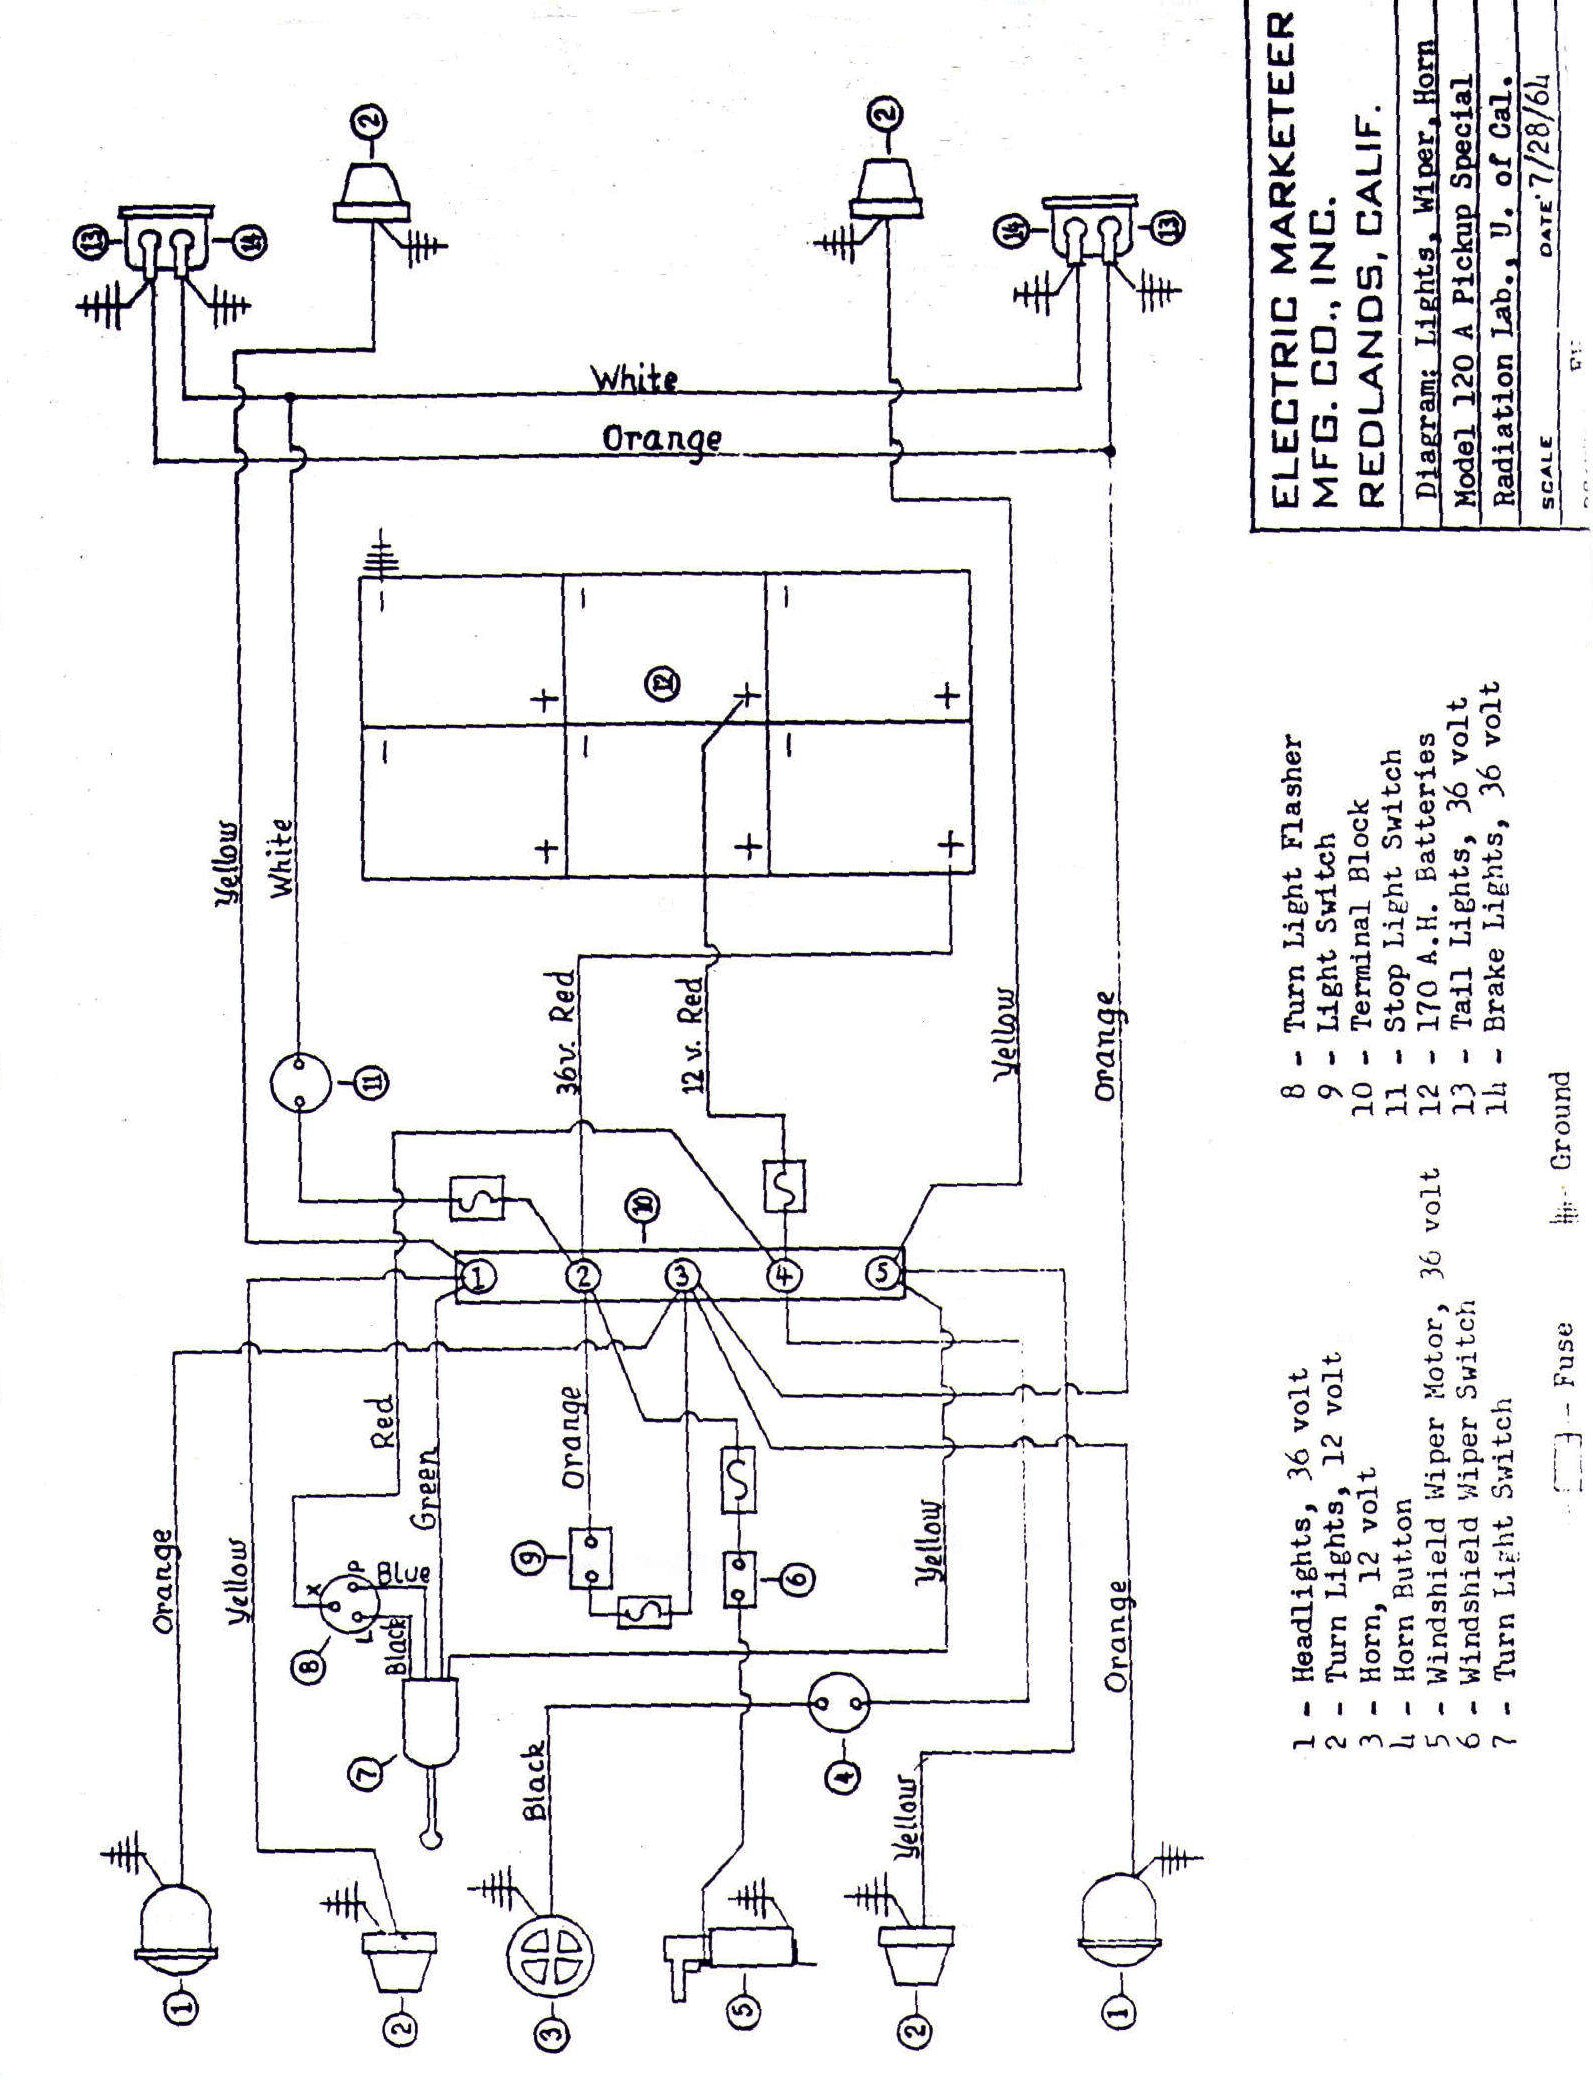 Melex Gas Golf Cart Wiring Diagram 152 Carts Dolgularcom